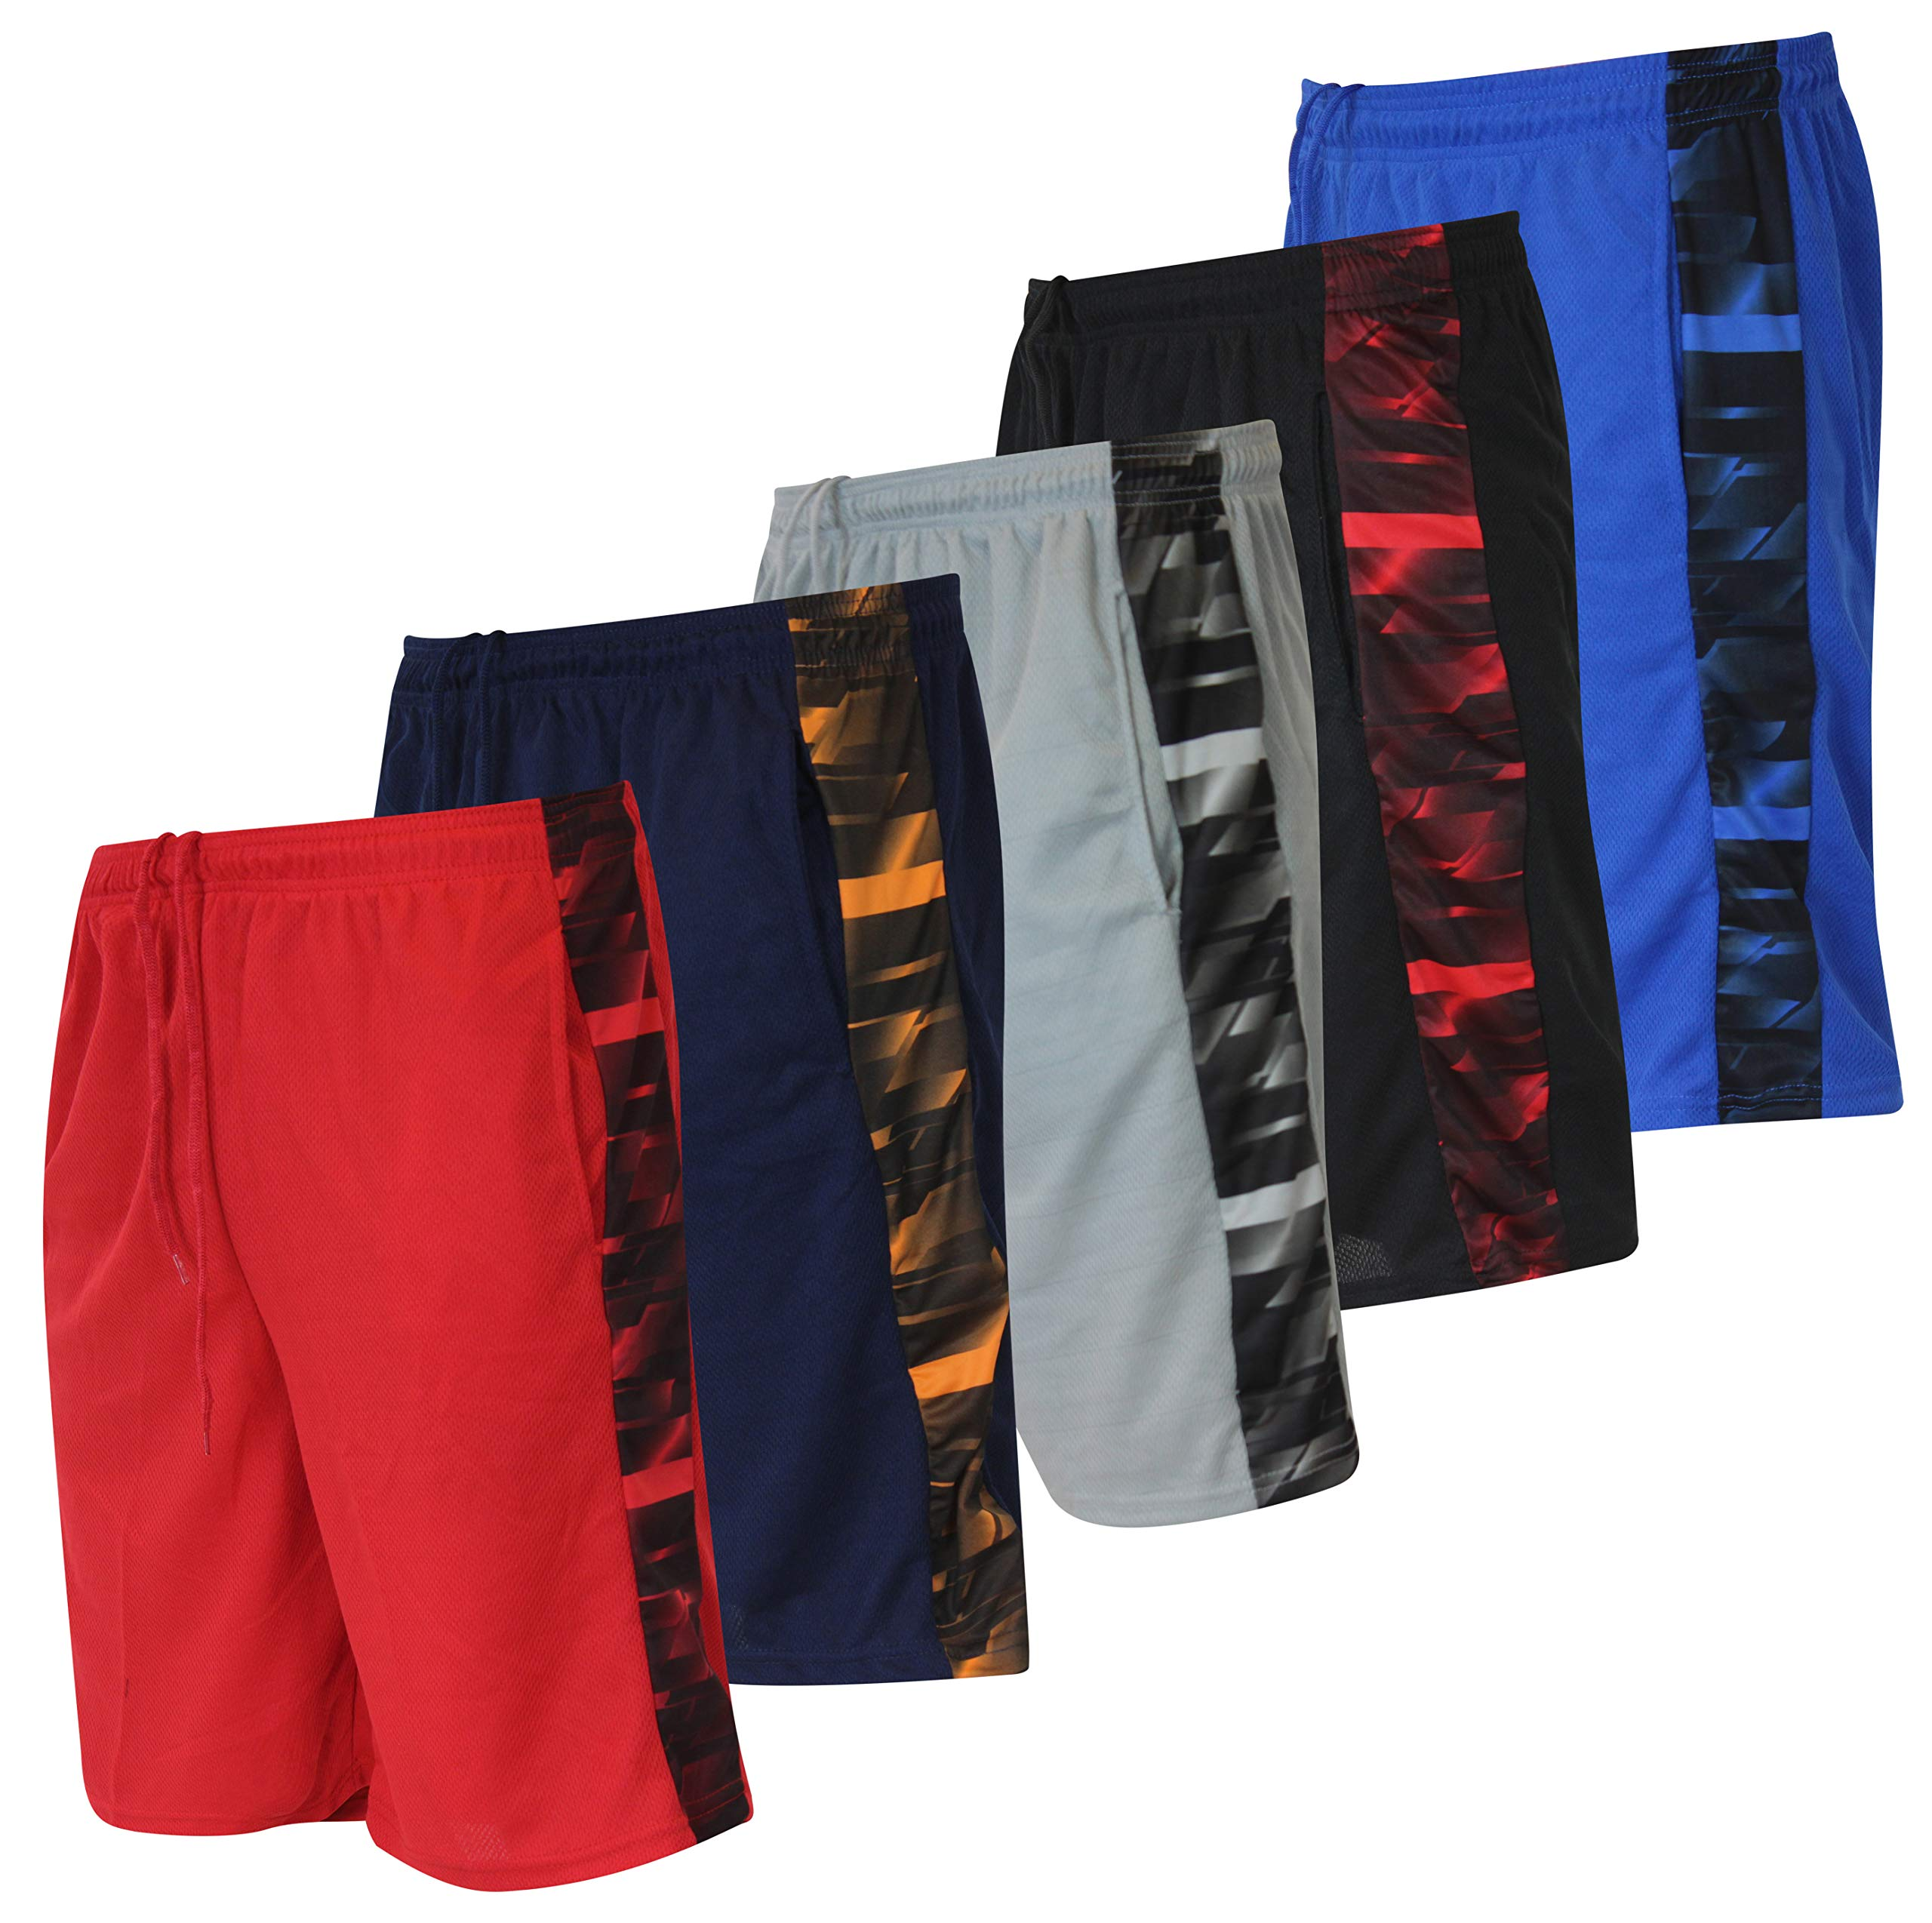 Men's Active Athletic Basketball Essentials Performance Gym Workout Shorts with Pockets - Set 4-5 Pack, S